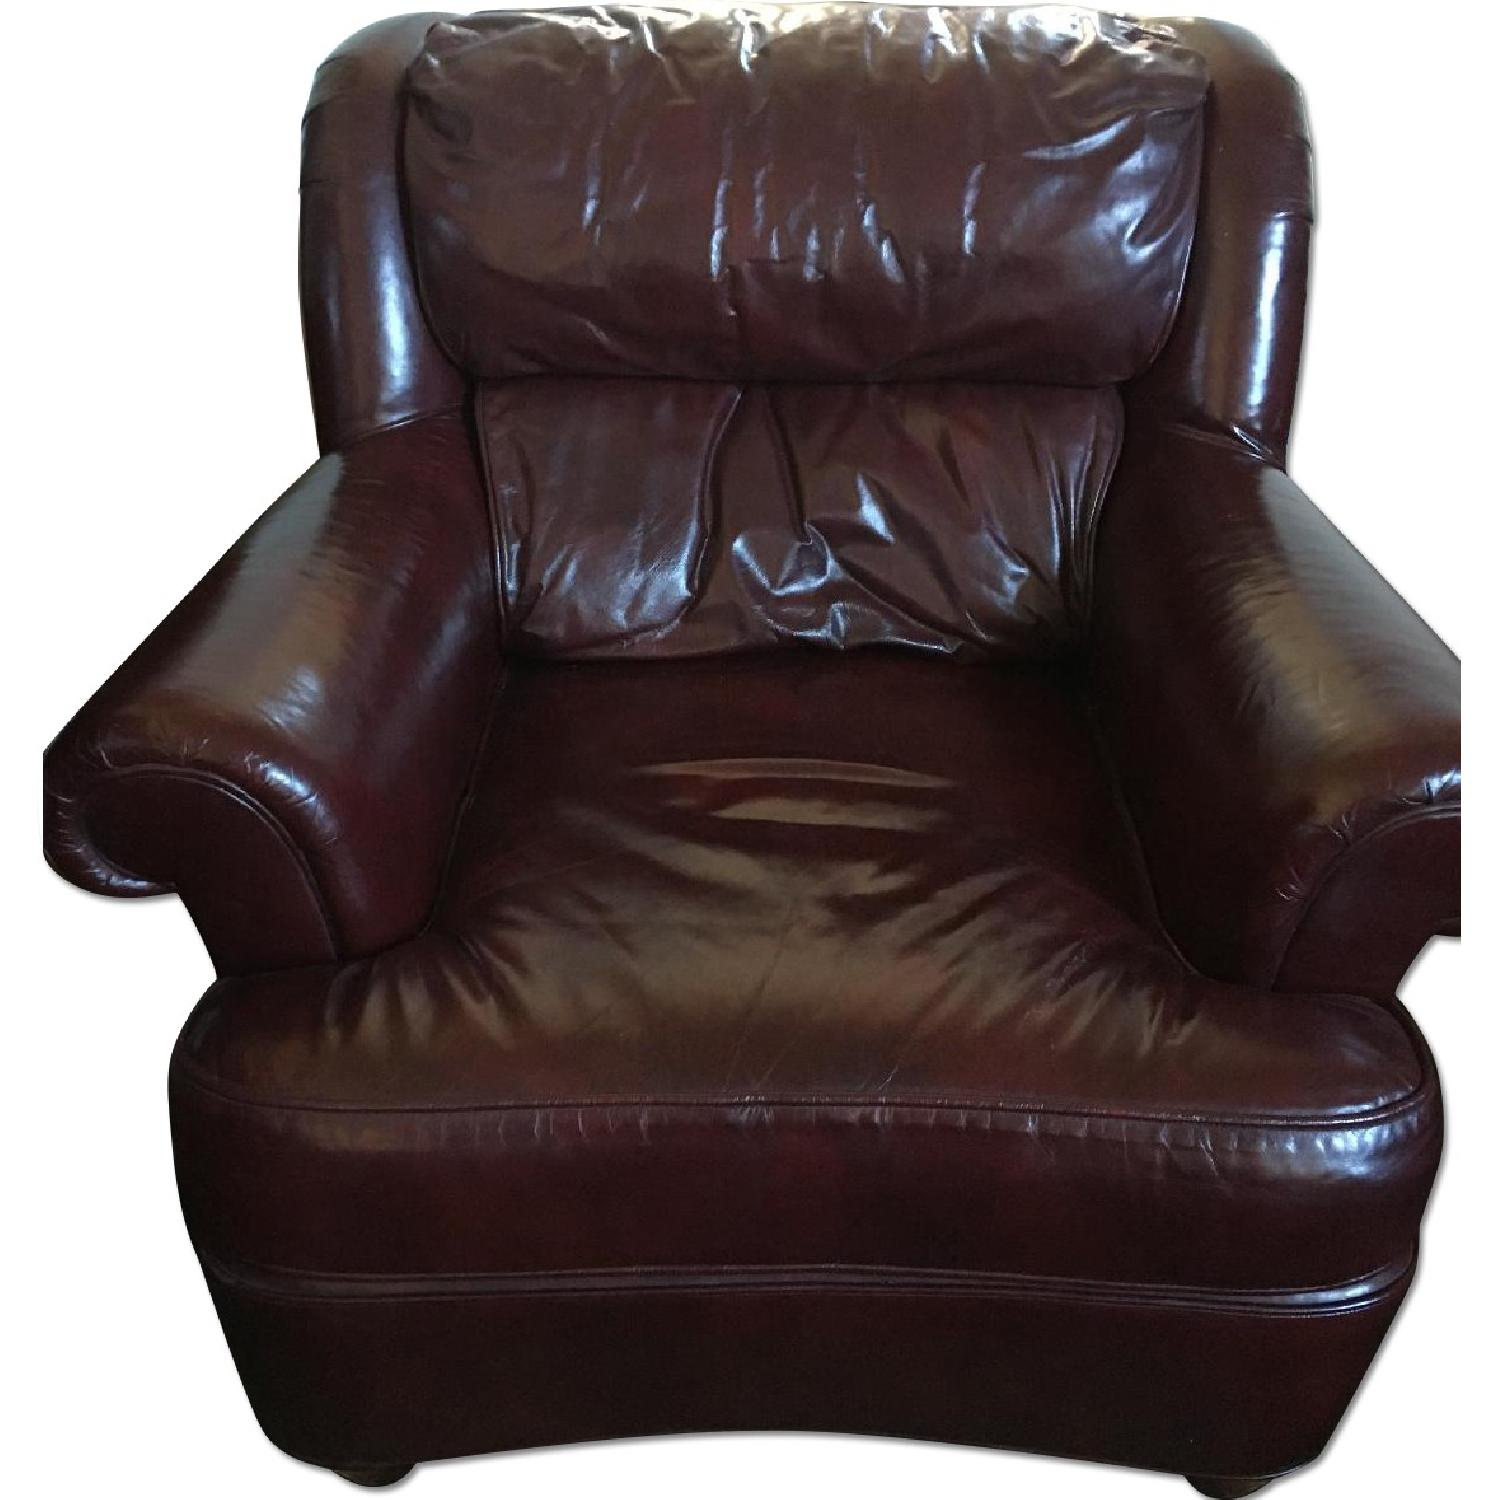 Burgundy Leather Reading Chair & Ottoman - image-0